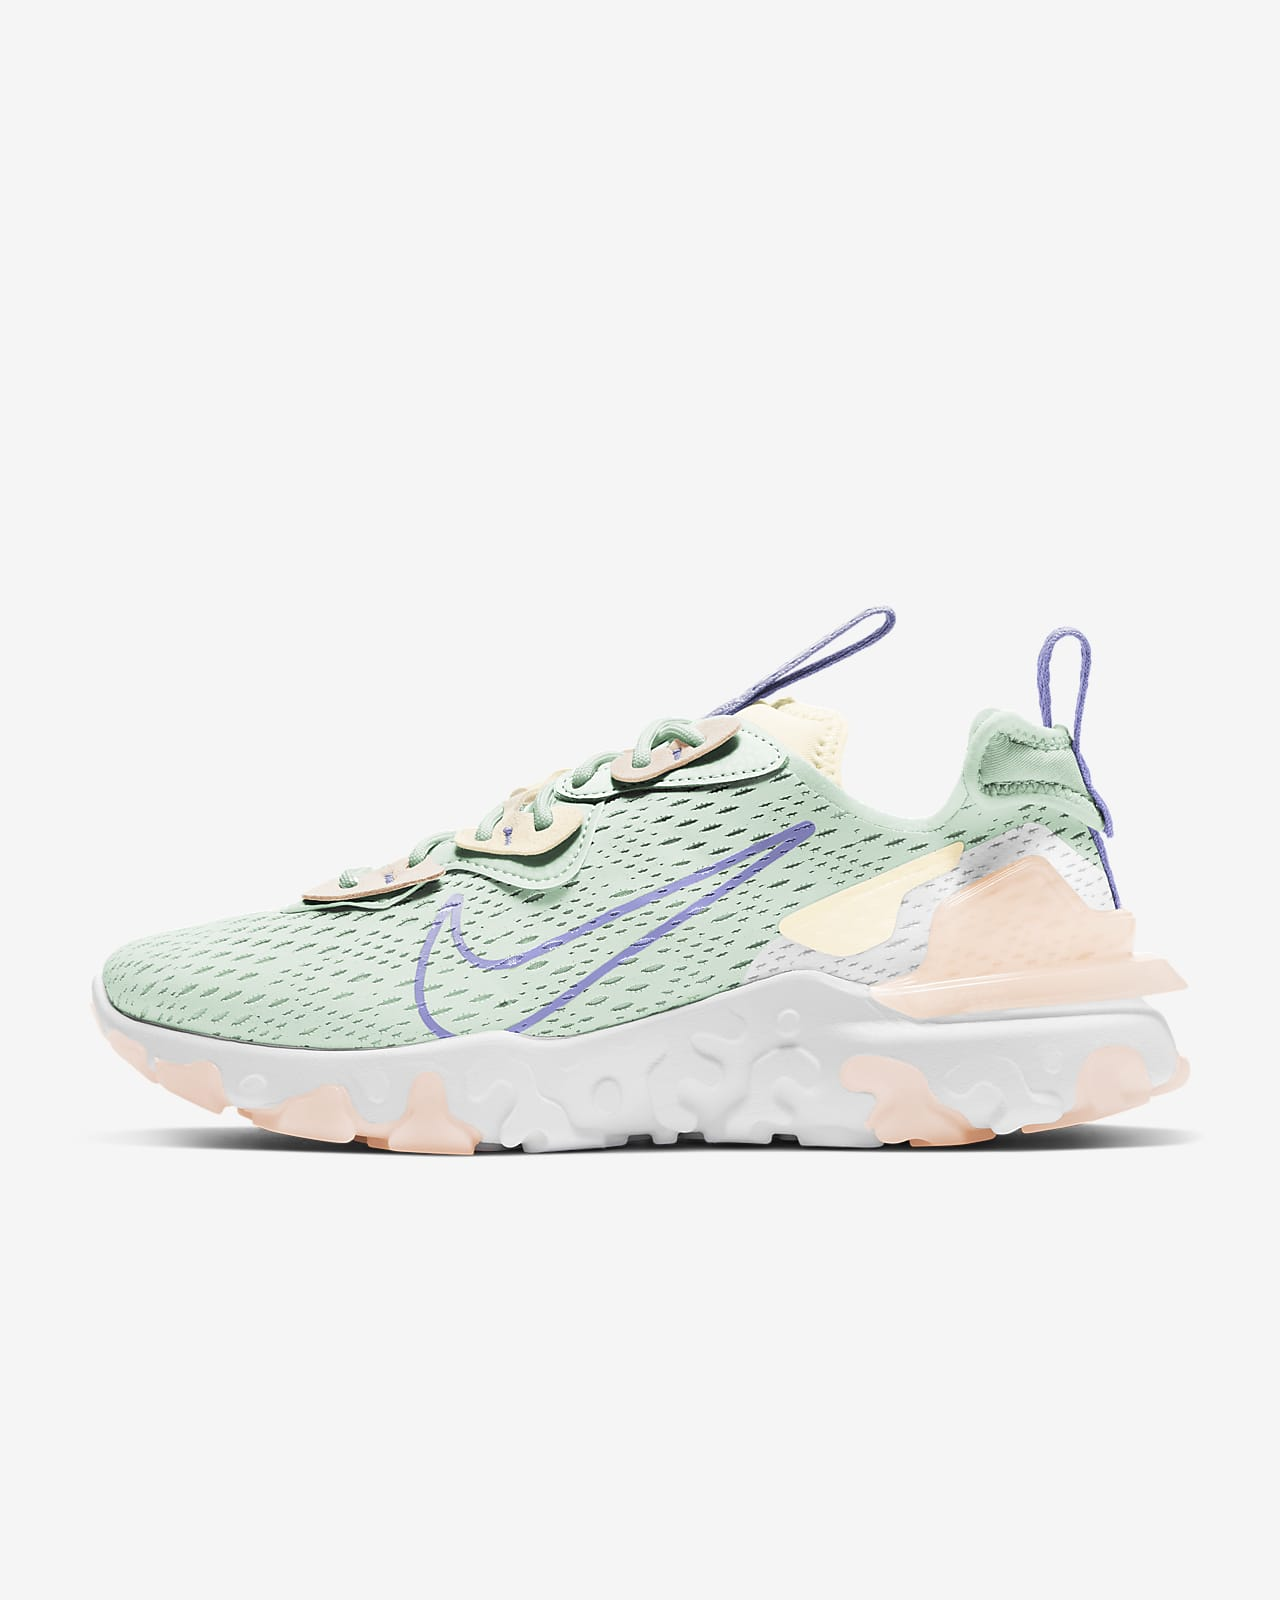 Chaussure Nike React Vision pour Femme. Nike CA